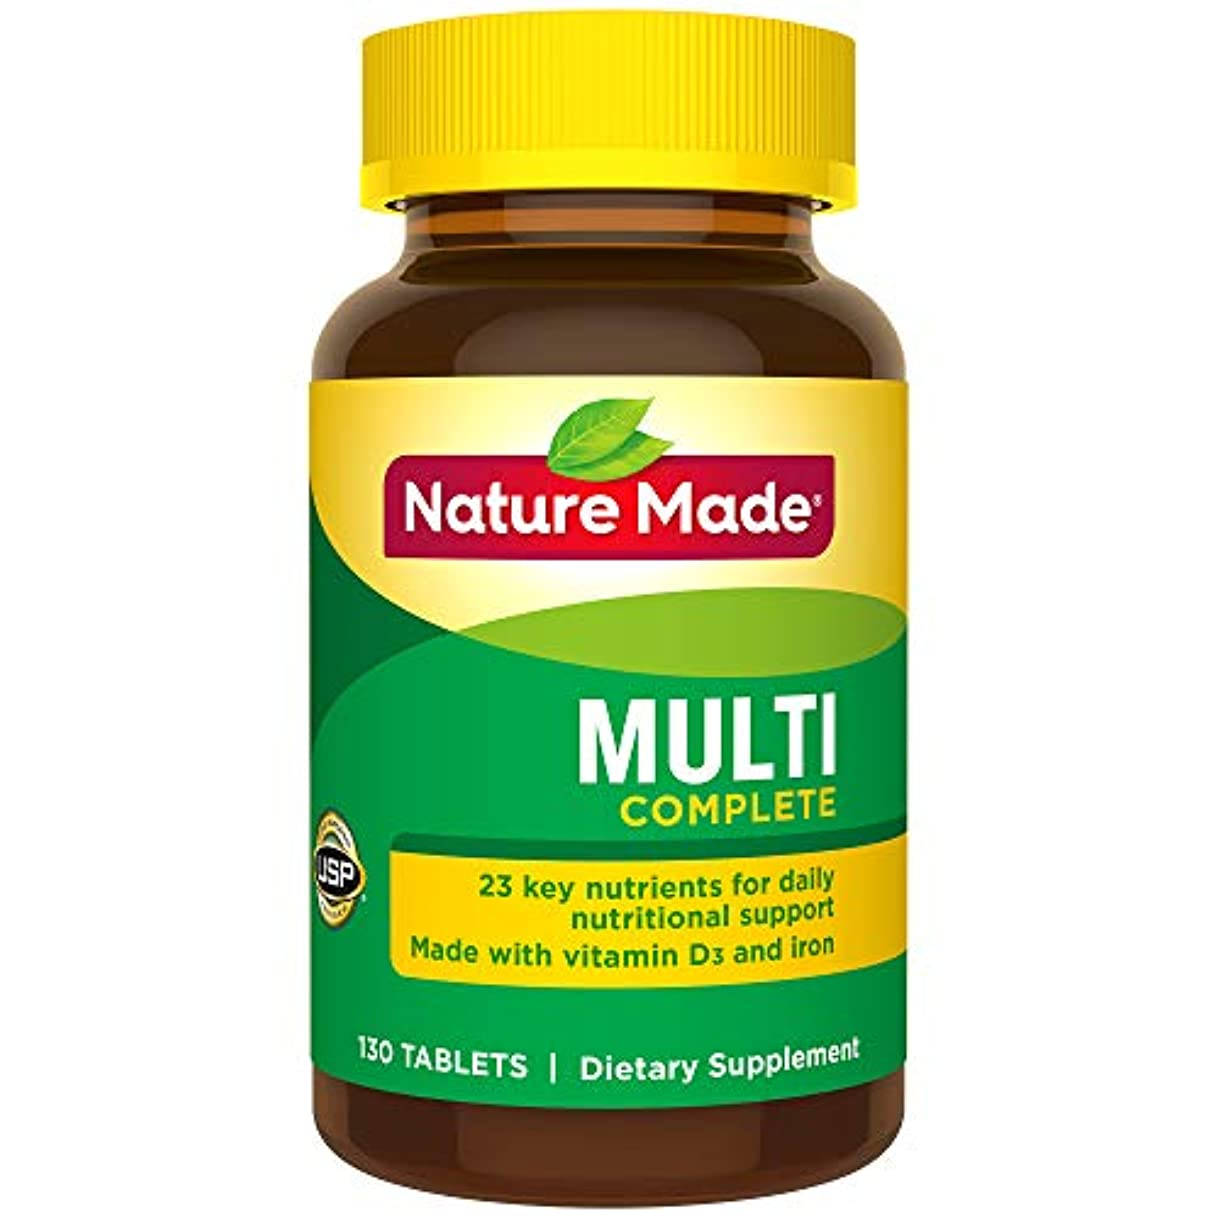 専門知識一致する農場Nature Made Multi Complete with Iron 130 Tablets by Nature Made (English Manual) 海外直送品